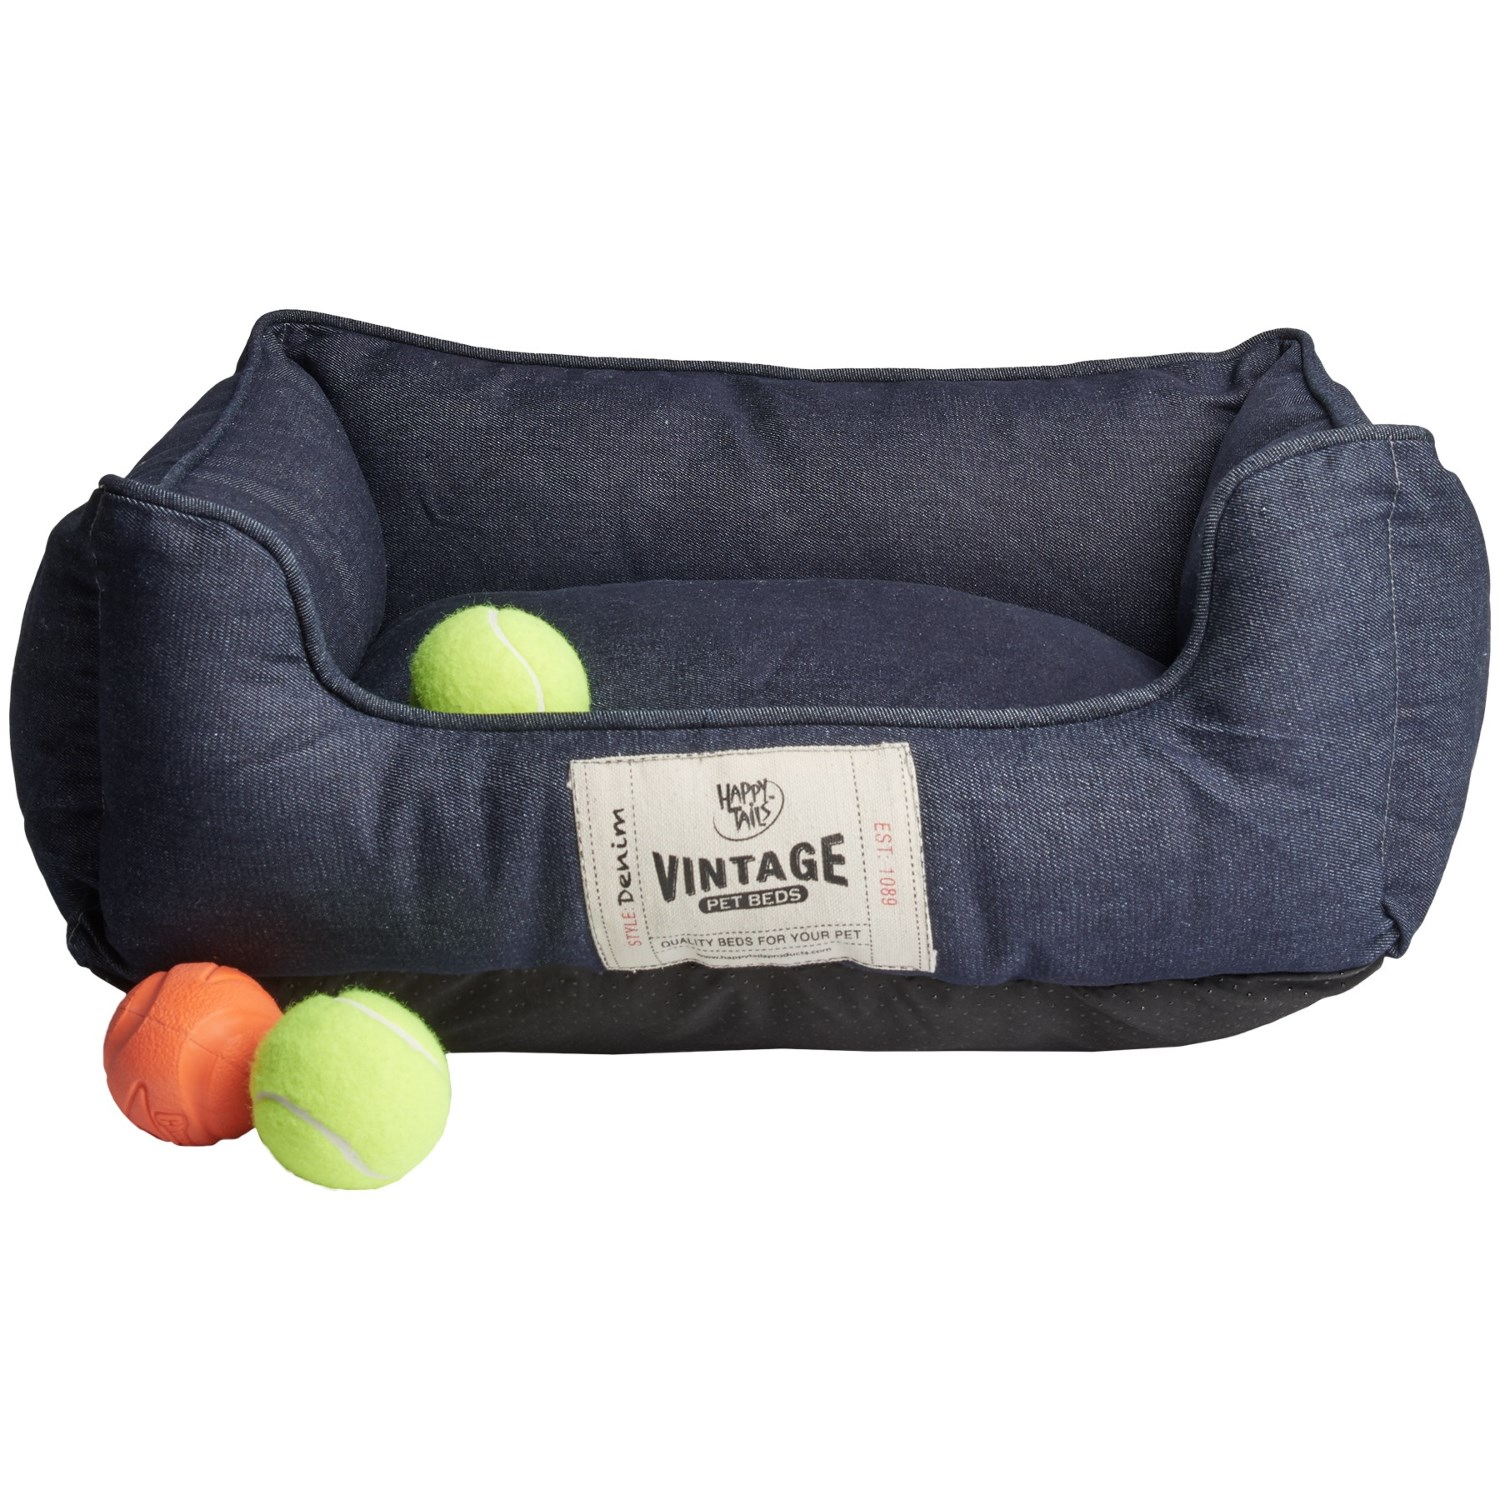 What Size Dog Bed To Get